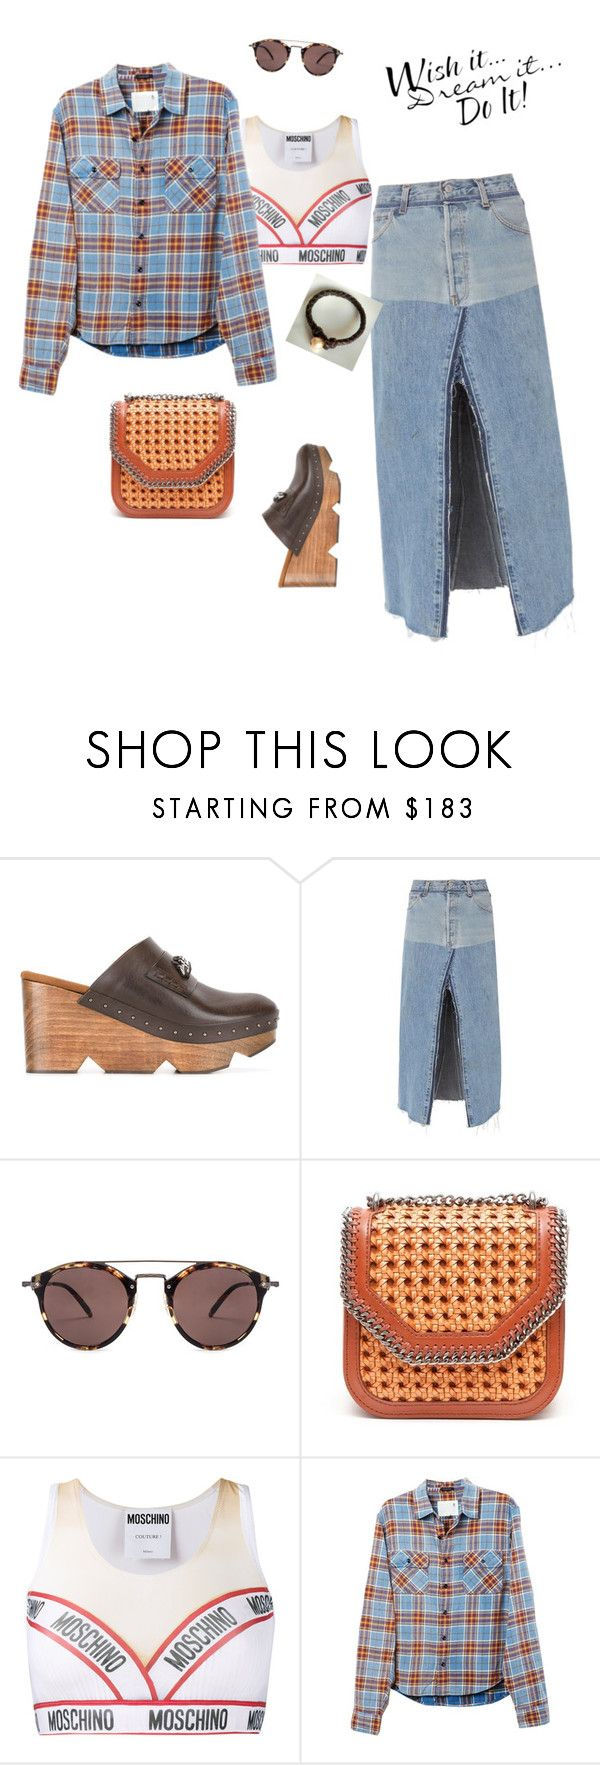 """""""How to Style Plaid shirt"""" by olivia-stones ❤ liked on Polyvore featuring STELLA McCARTNEY, RE/DONE, Oliver Peoples, Moschino, R13, WALL, finepearls and authentico"""